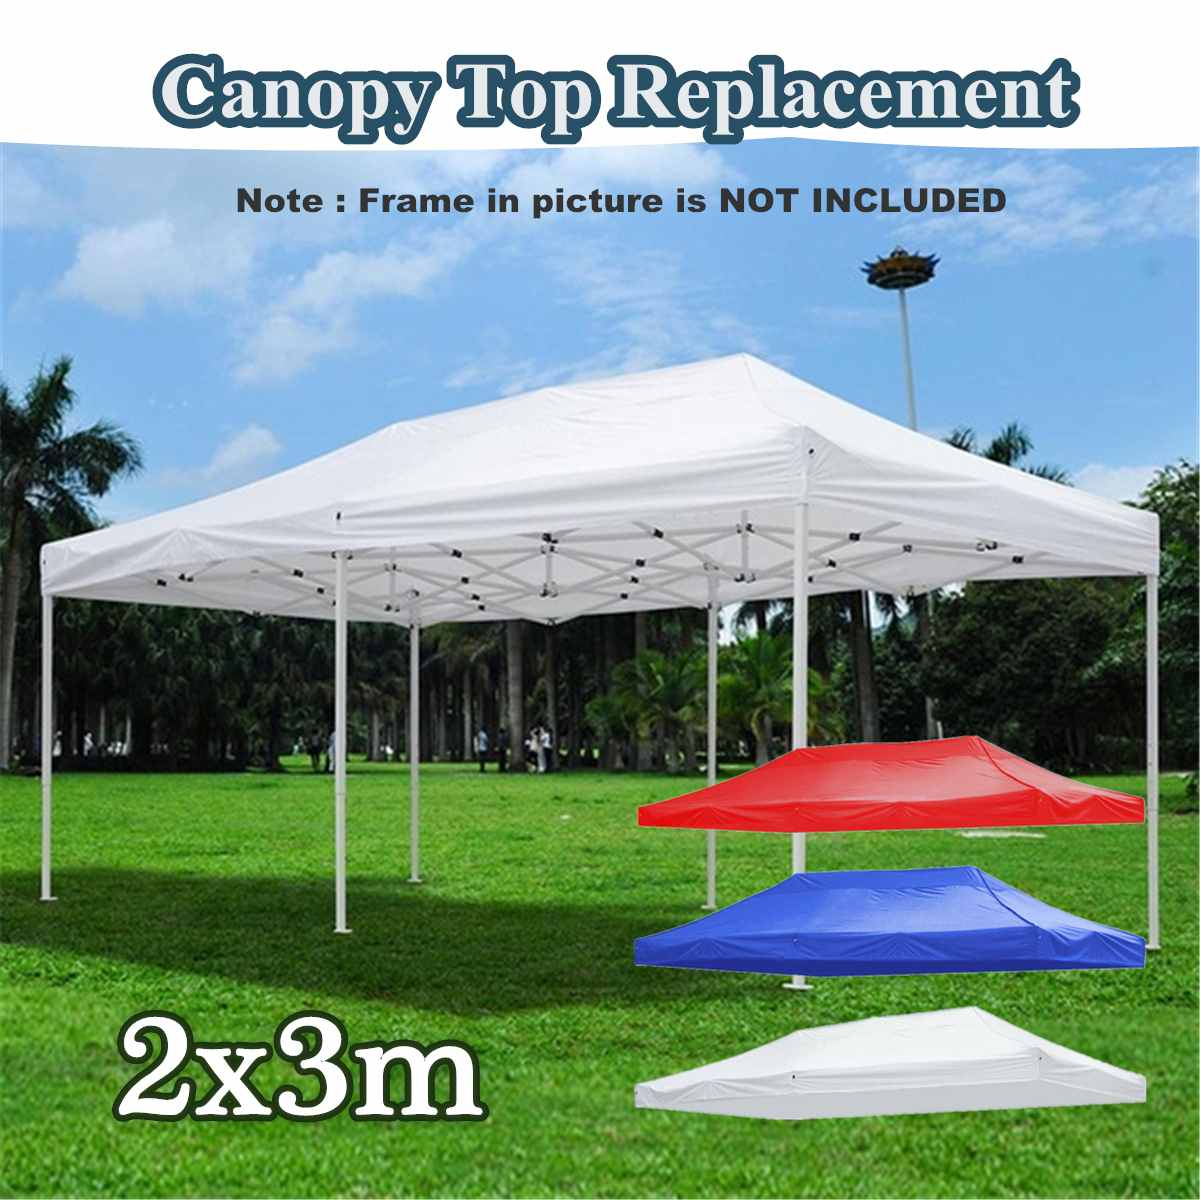 Quality 2x3m Gazebo Tents 3 Colors Waterproof Garden Tent Gazebo Canopy Outdoor Marquee Market Tent Shade Party Pawilon Ogrodowy